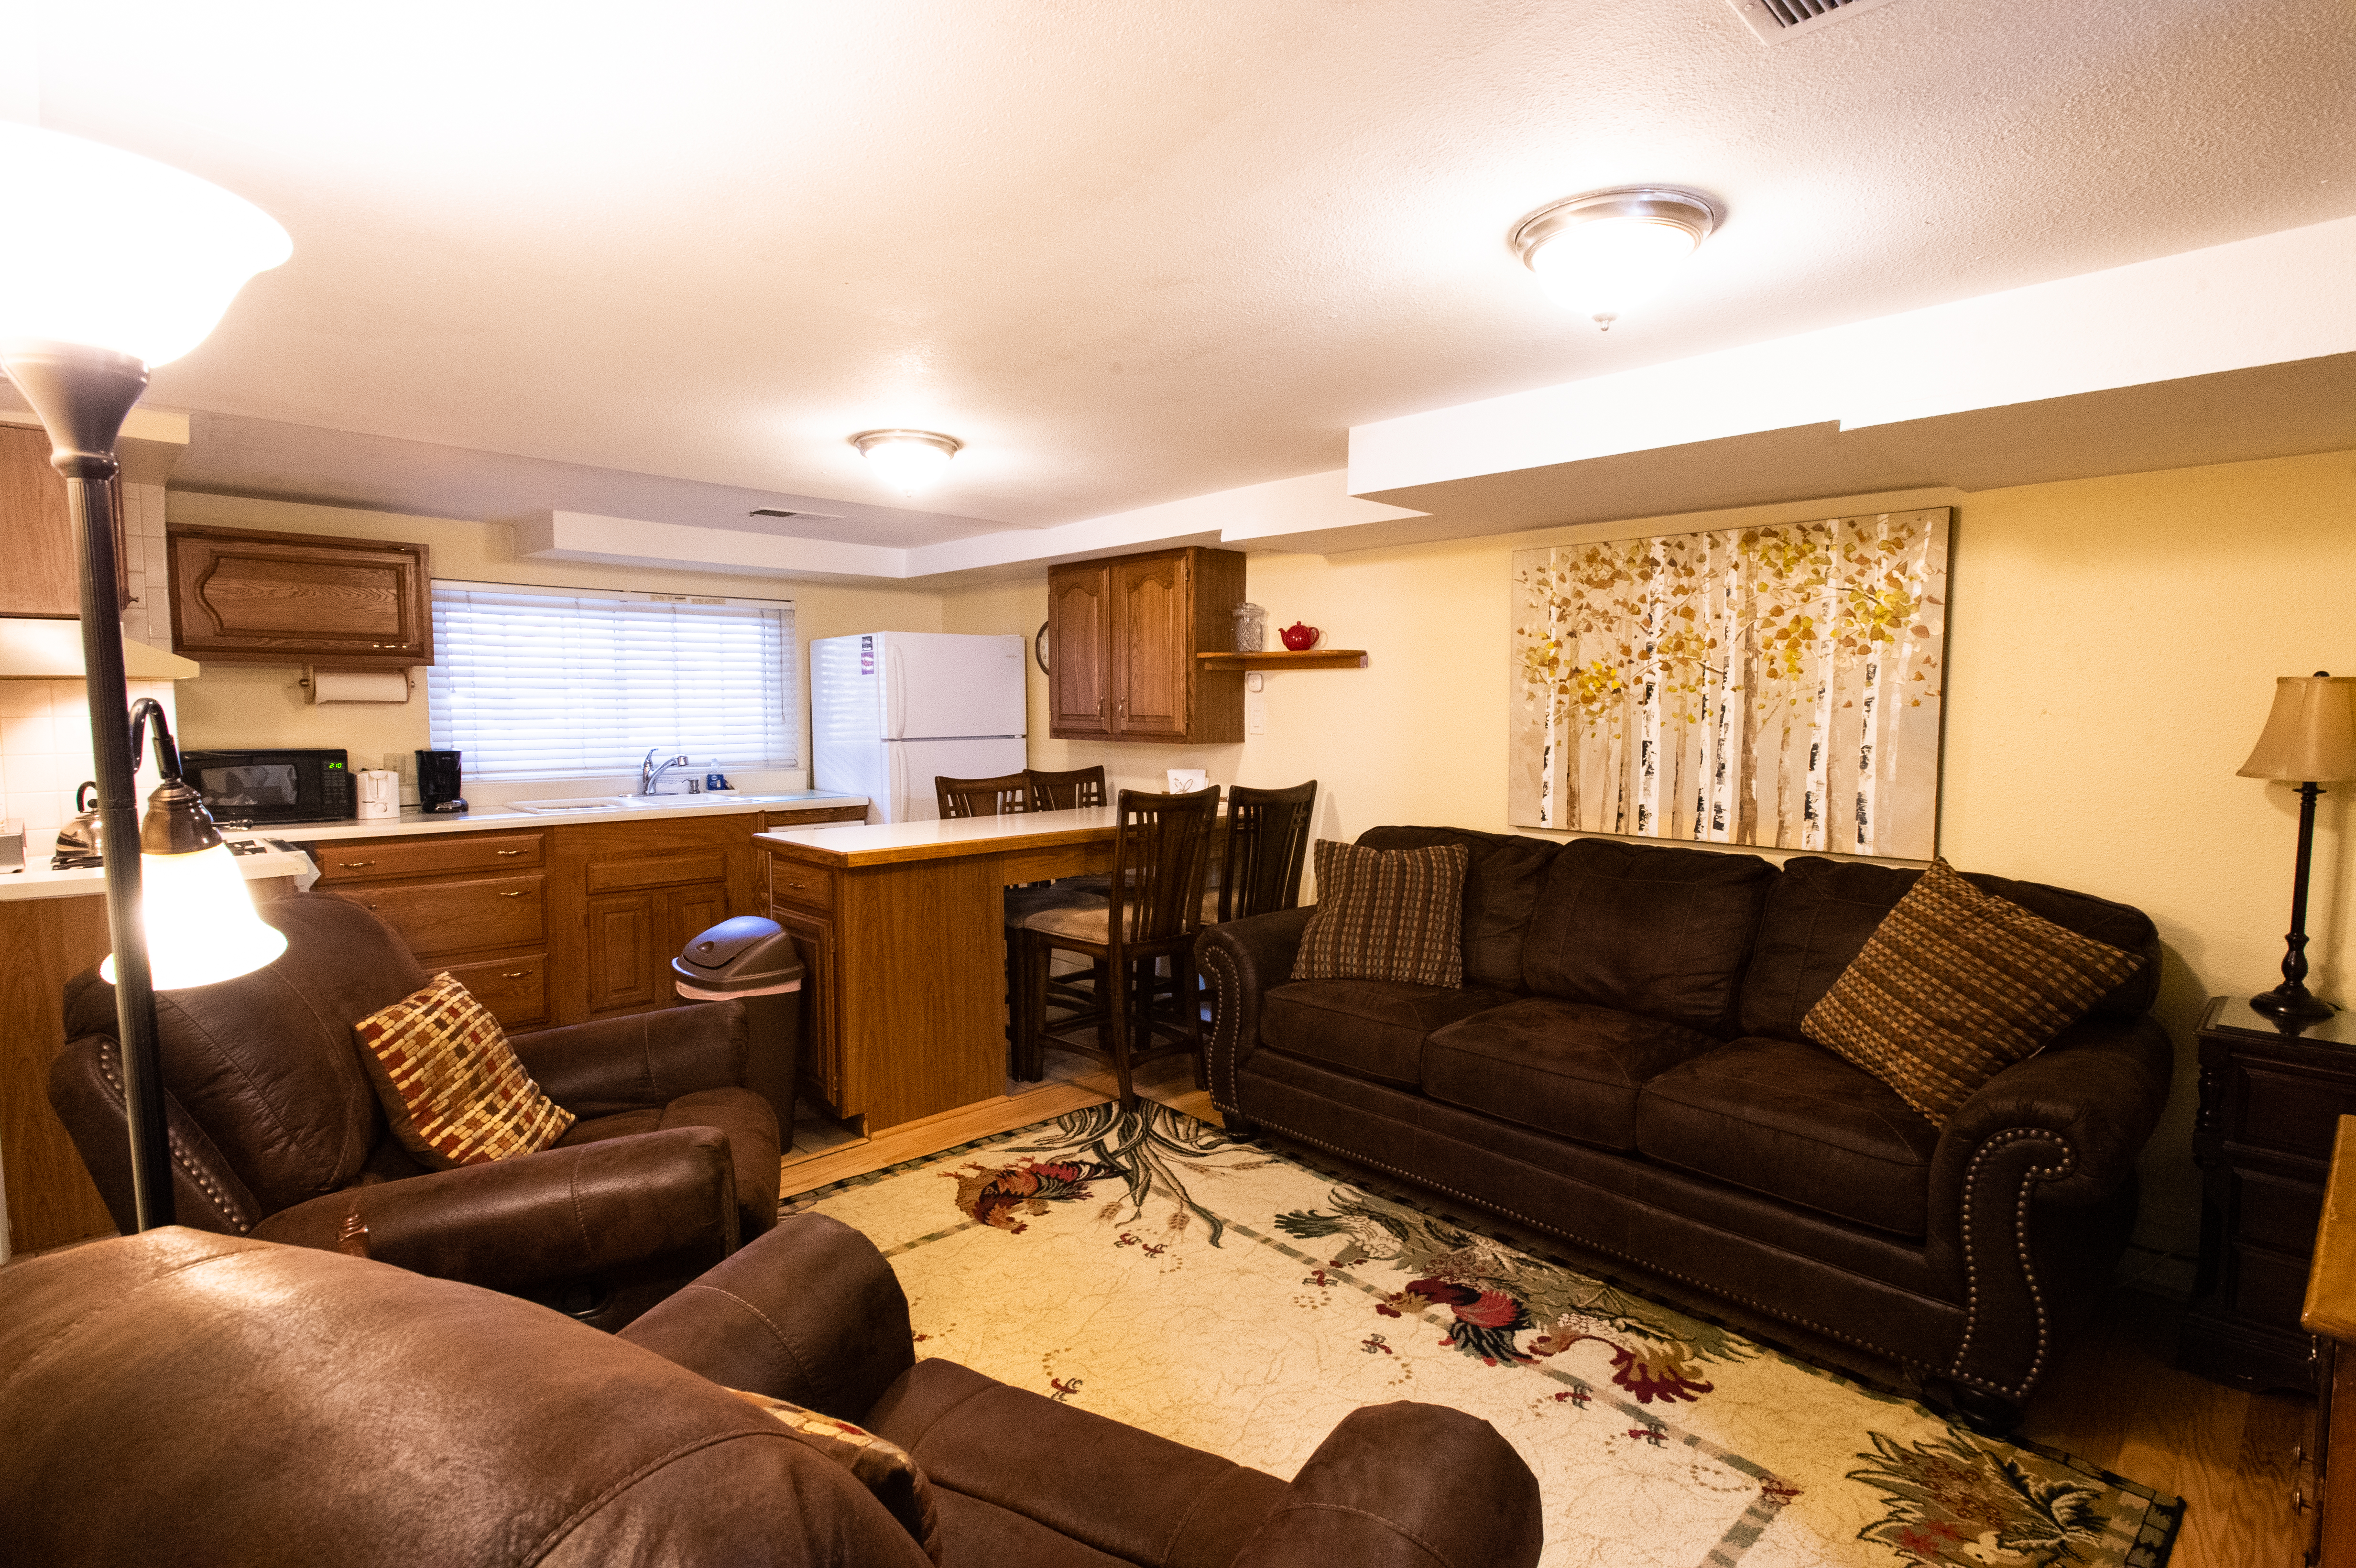 Living Room, Kitchen, and Dining Area